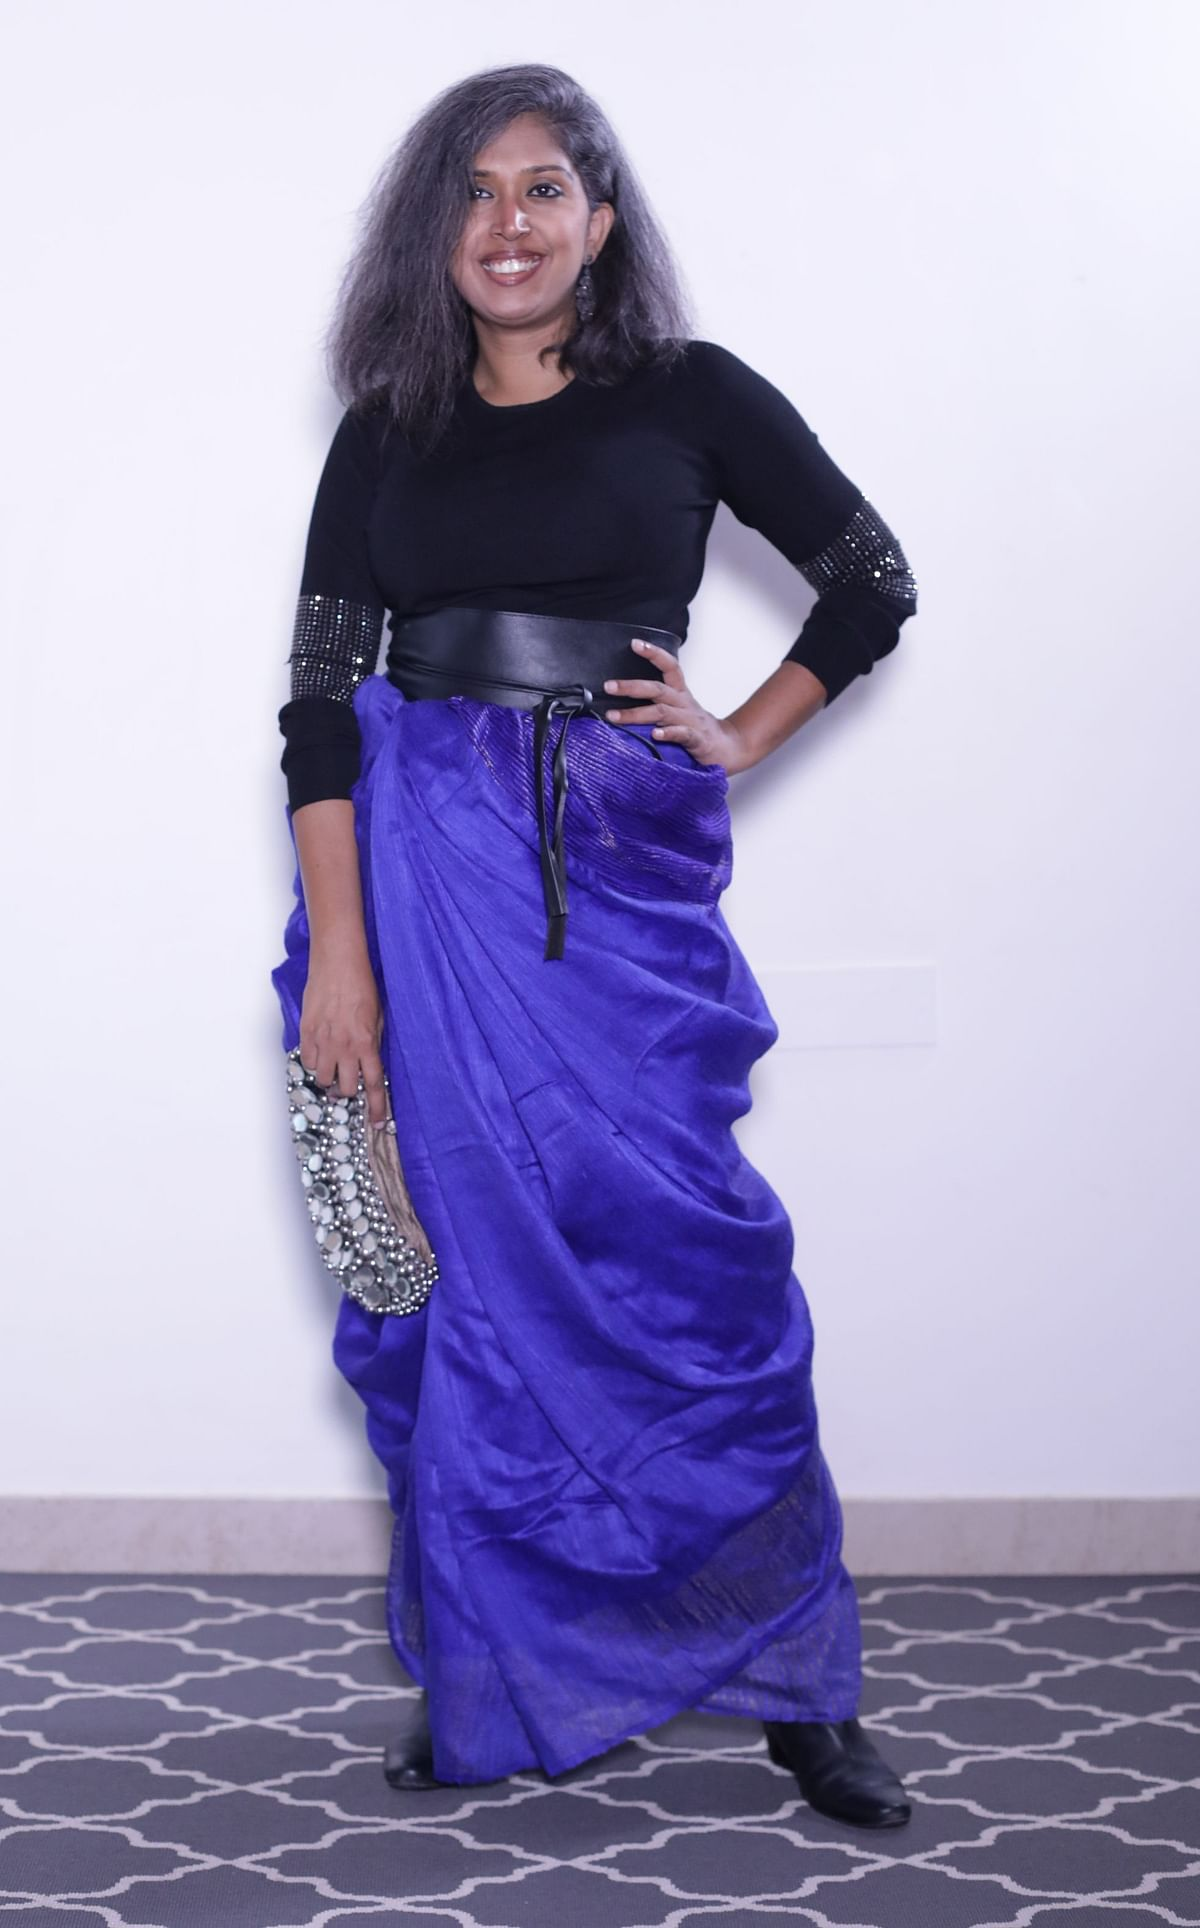 Looking stylish in this Andhra style drape.